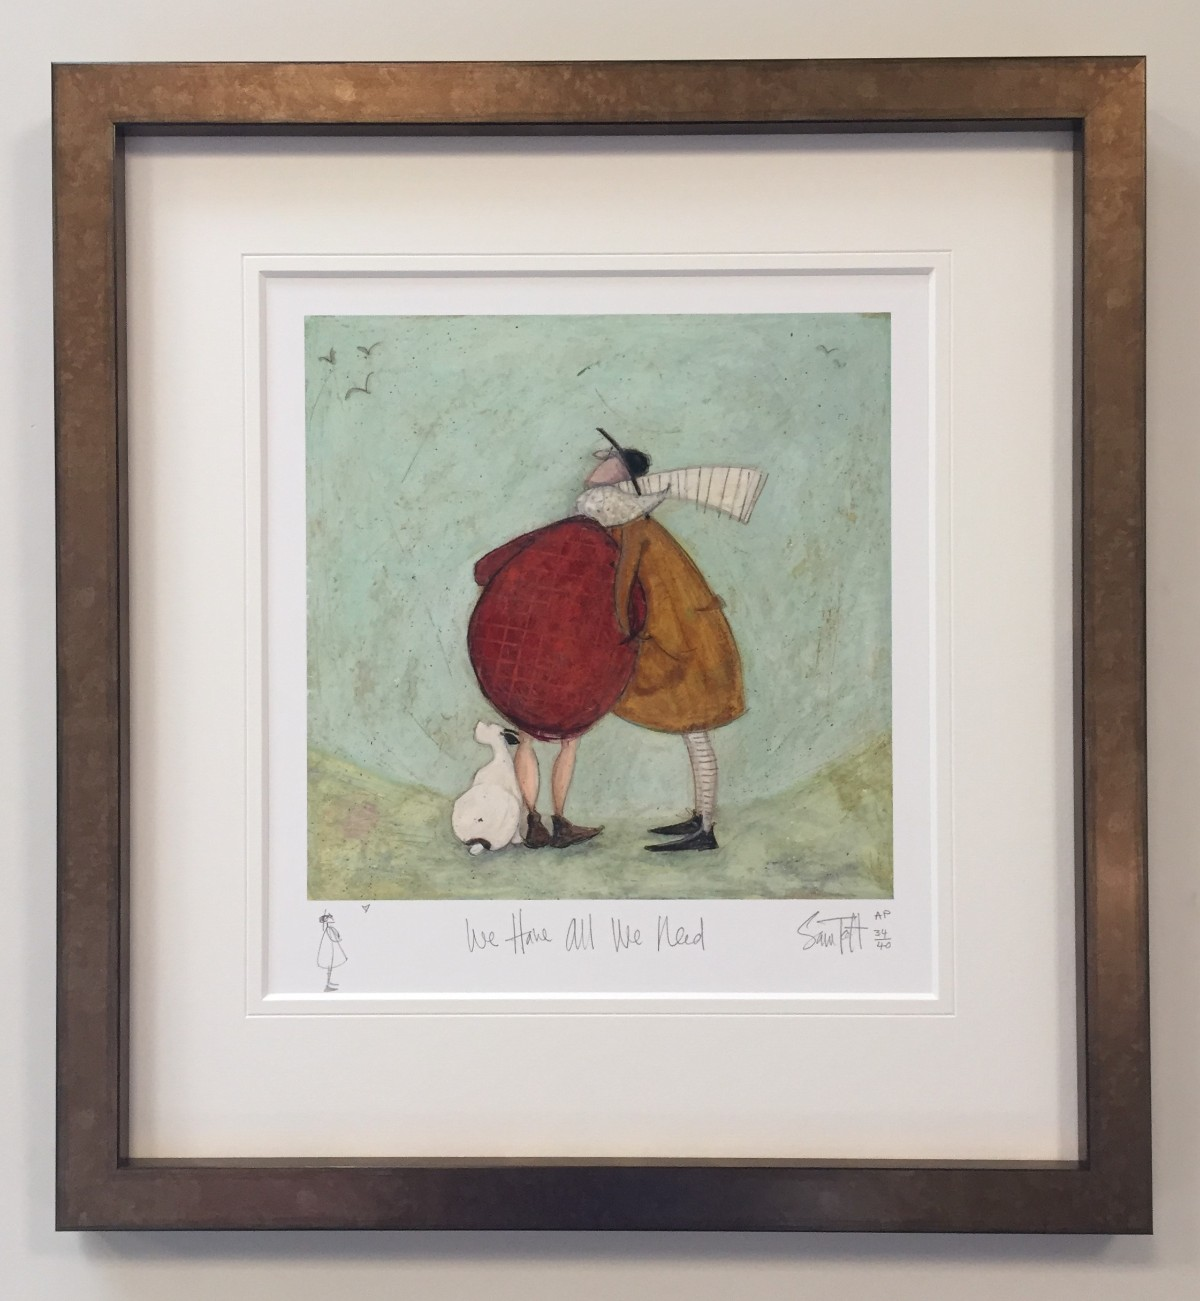 We Have All We Need -  AP Remarque by Sam Toft